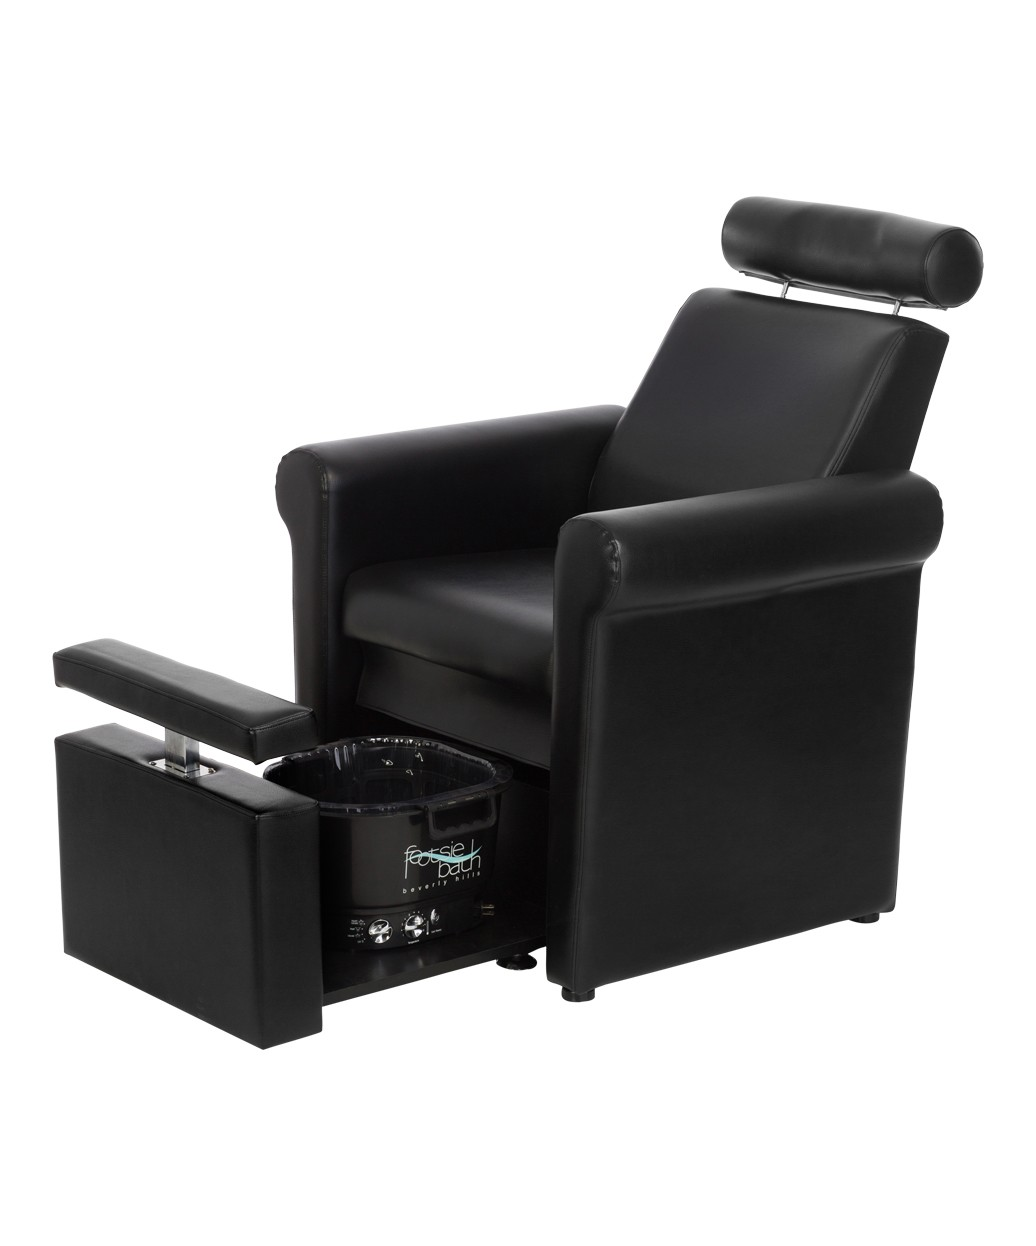 Pedicure Stool with Footrest: Mona Lisa Pedicure Chair